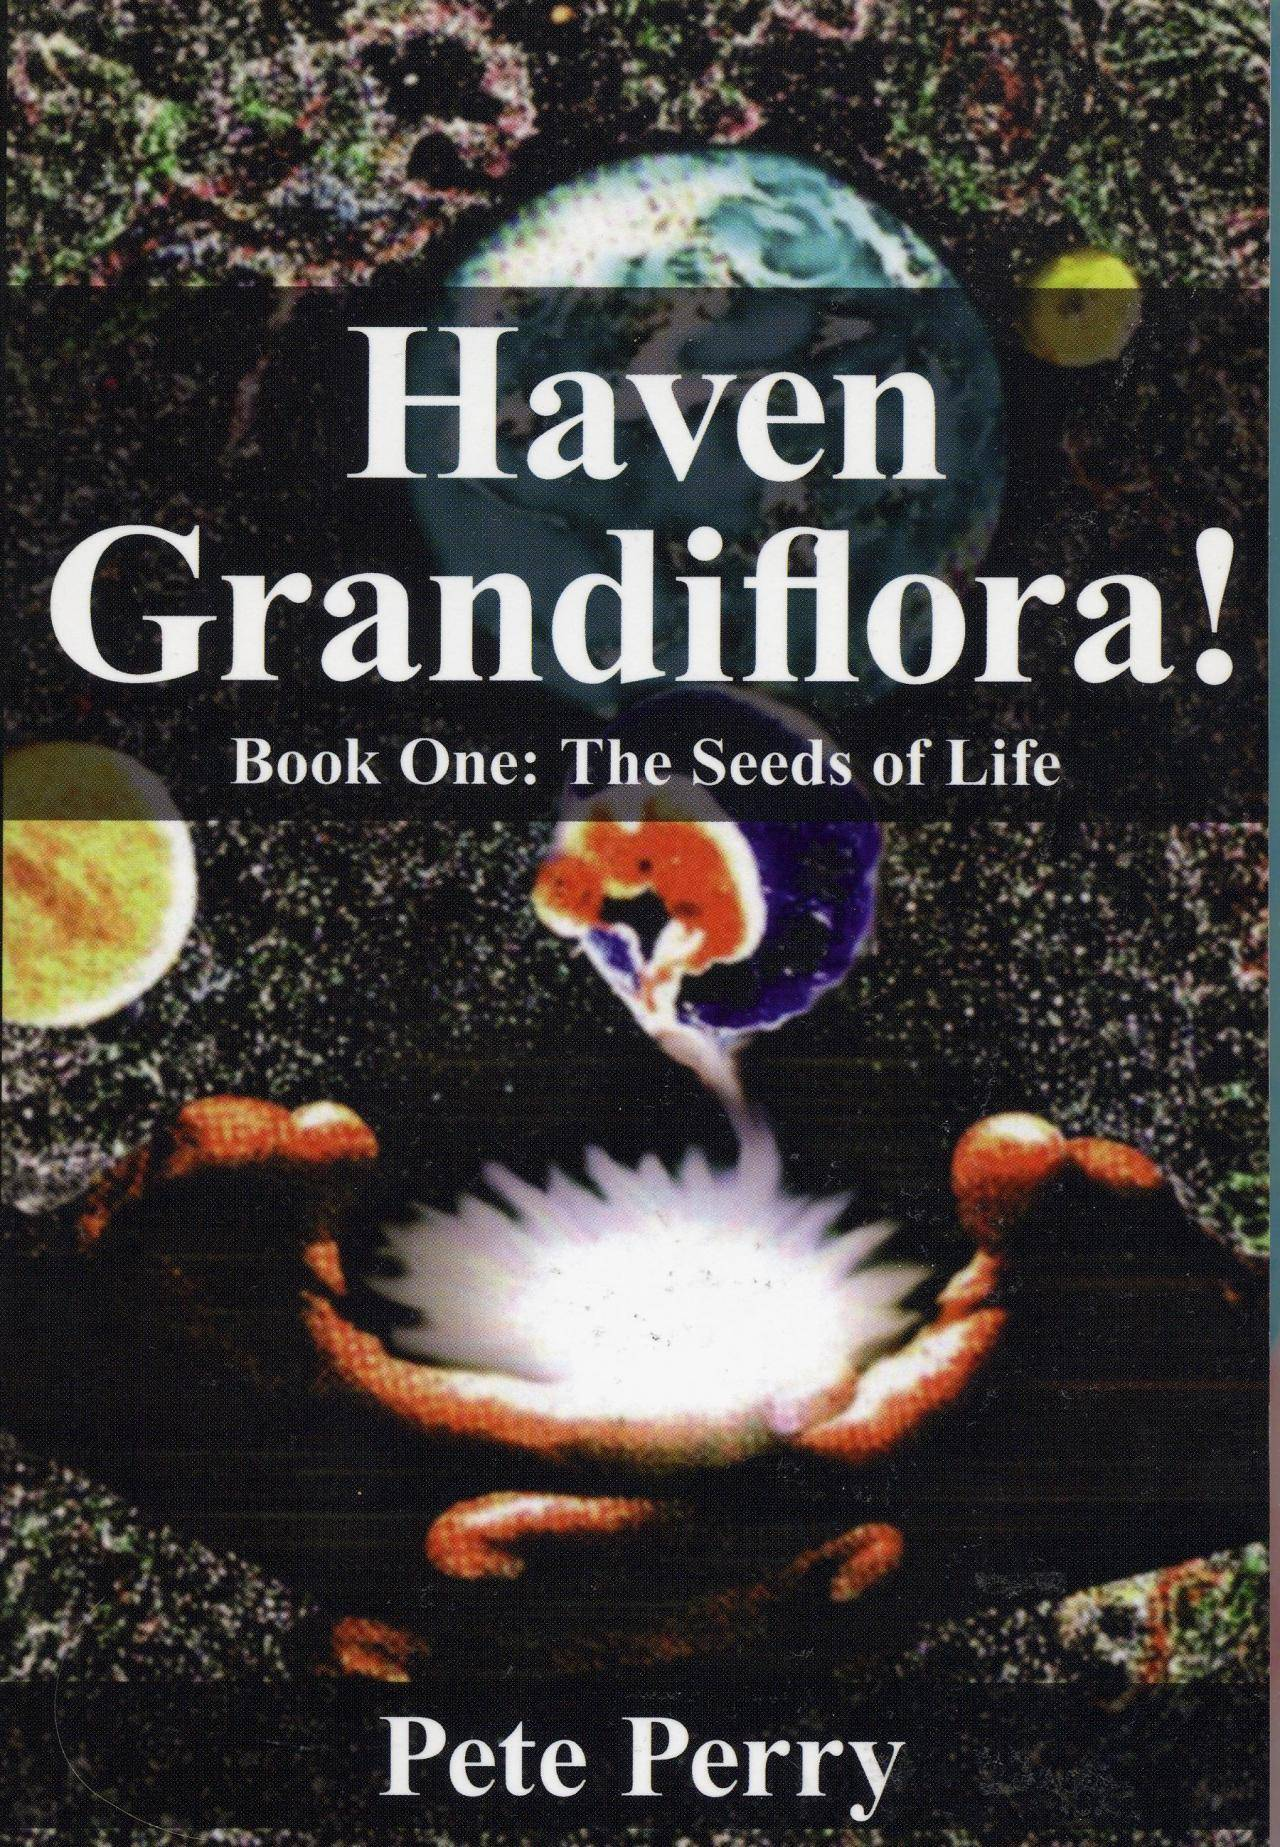 Haven Grandiflora! Book One: The Seeds of Life